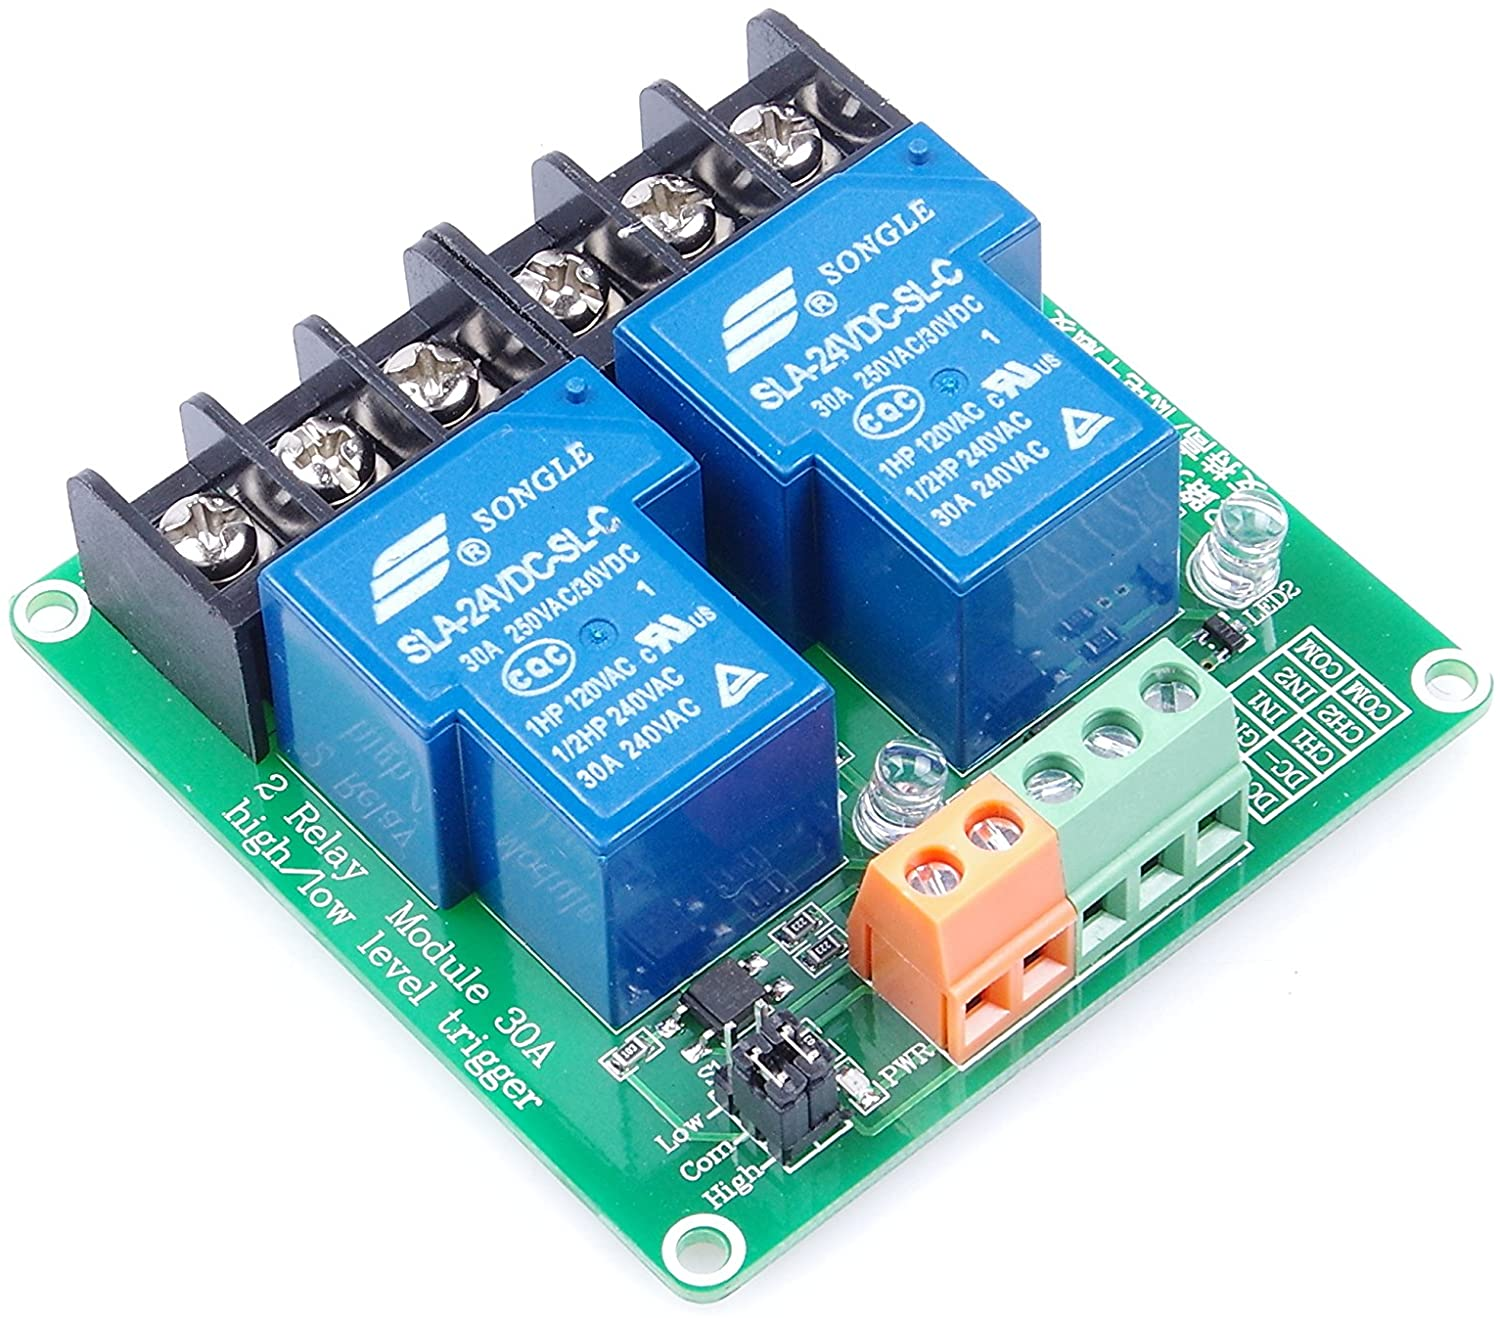 KNACRO 2-Channel Relay Module High Low Level Triggering Optocoupler Isolation Load 30A DC 30V AC 250V for PLC Automation Control, Industrial System Control, Arduino (DC 24V)